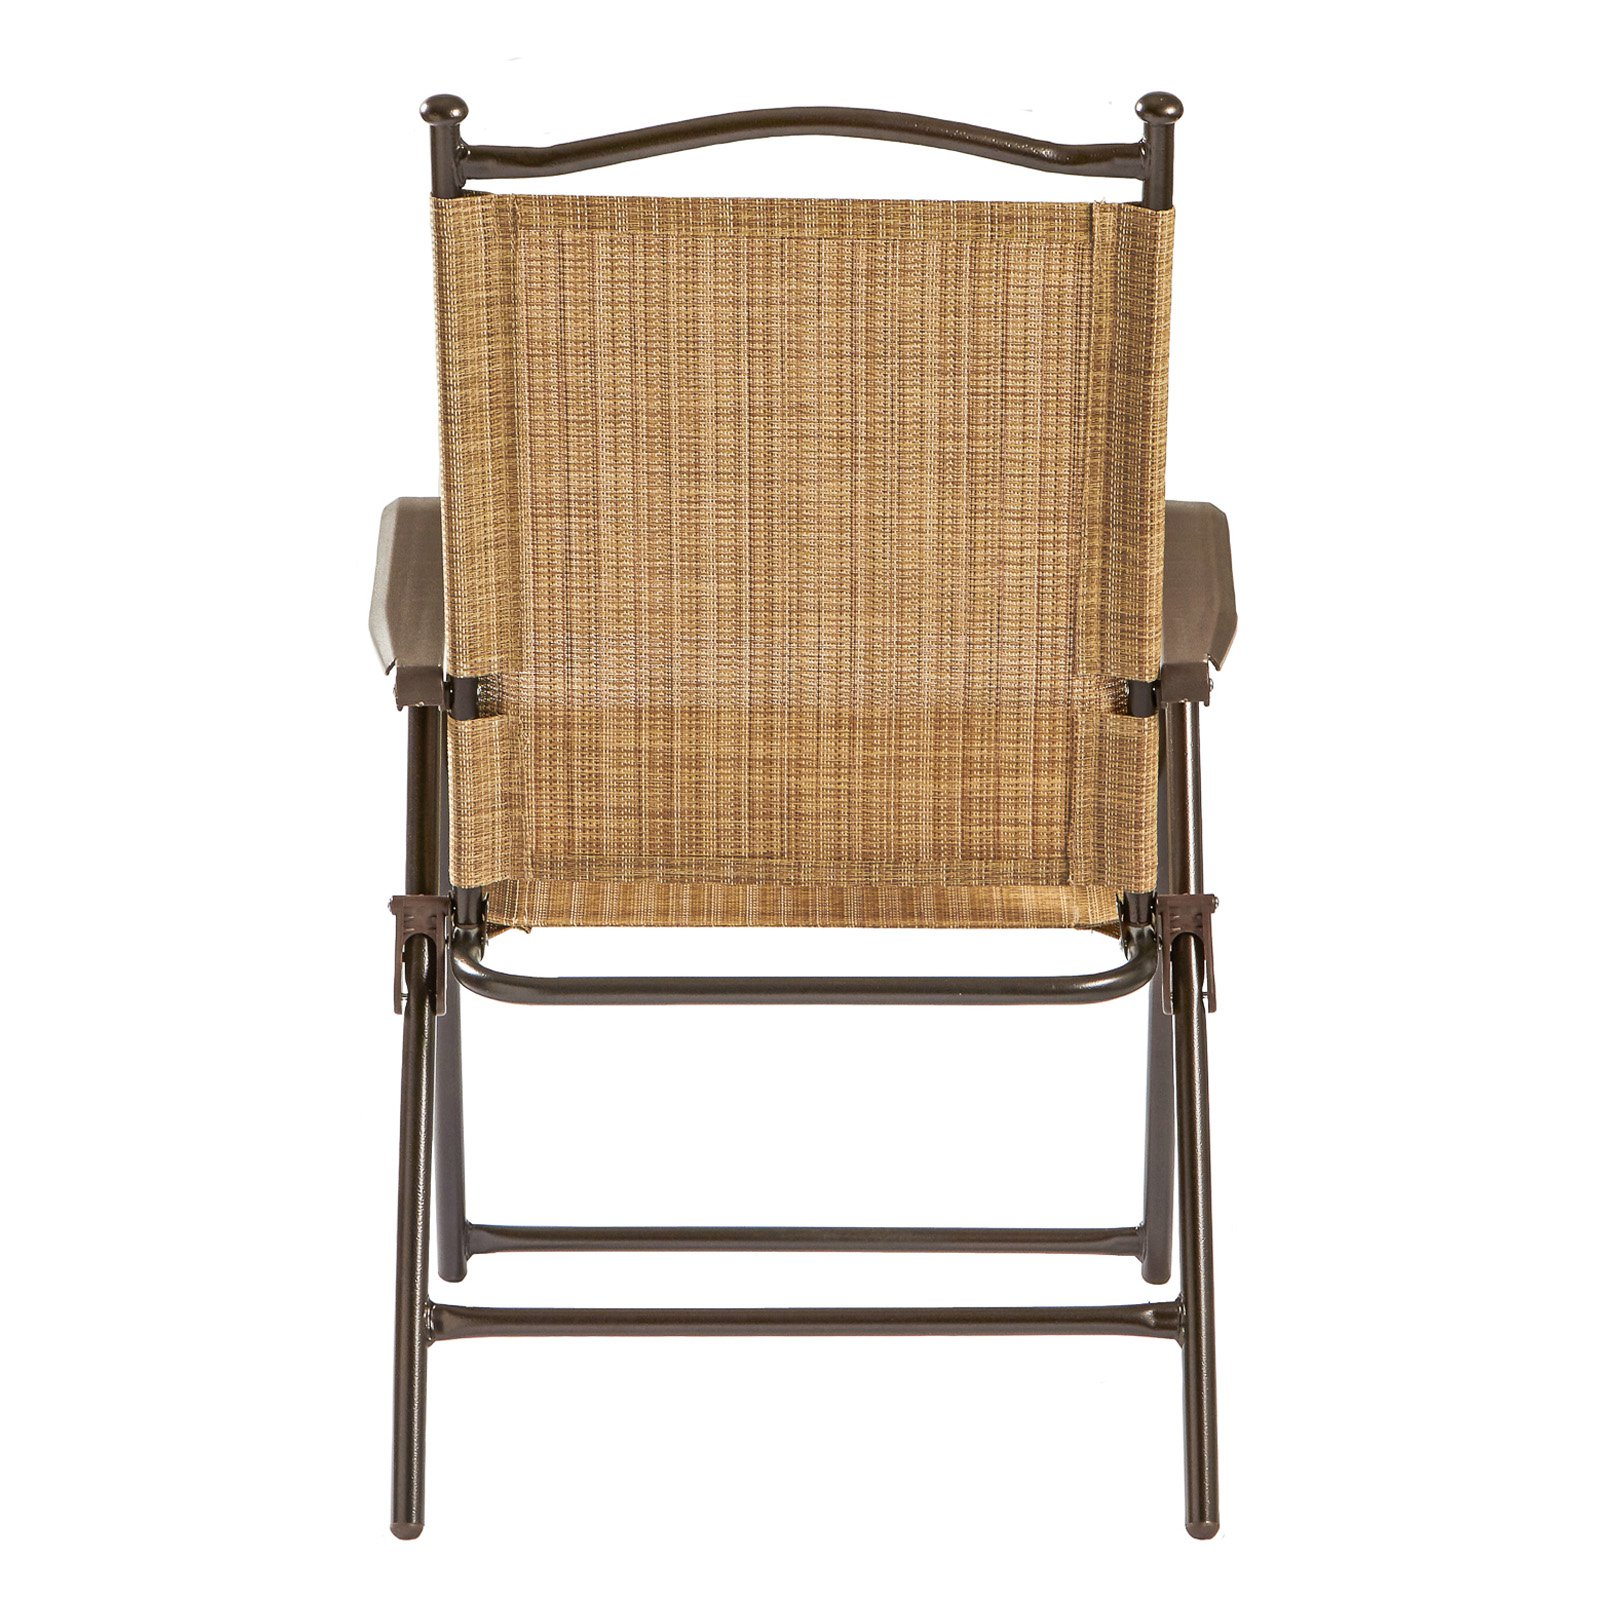 Sling Black Outdoor Chairs, Bamboo, Set of 2 - Walmart.com